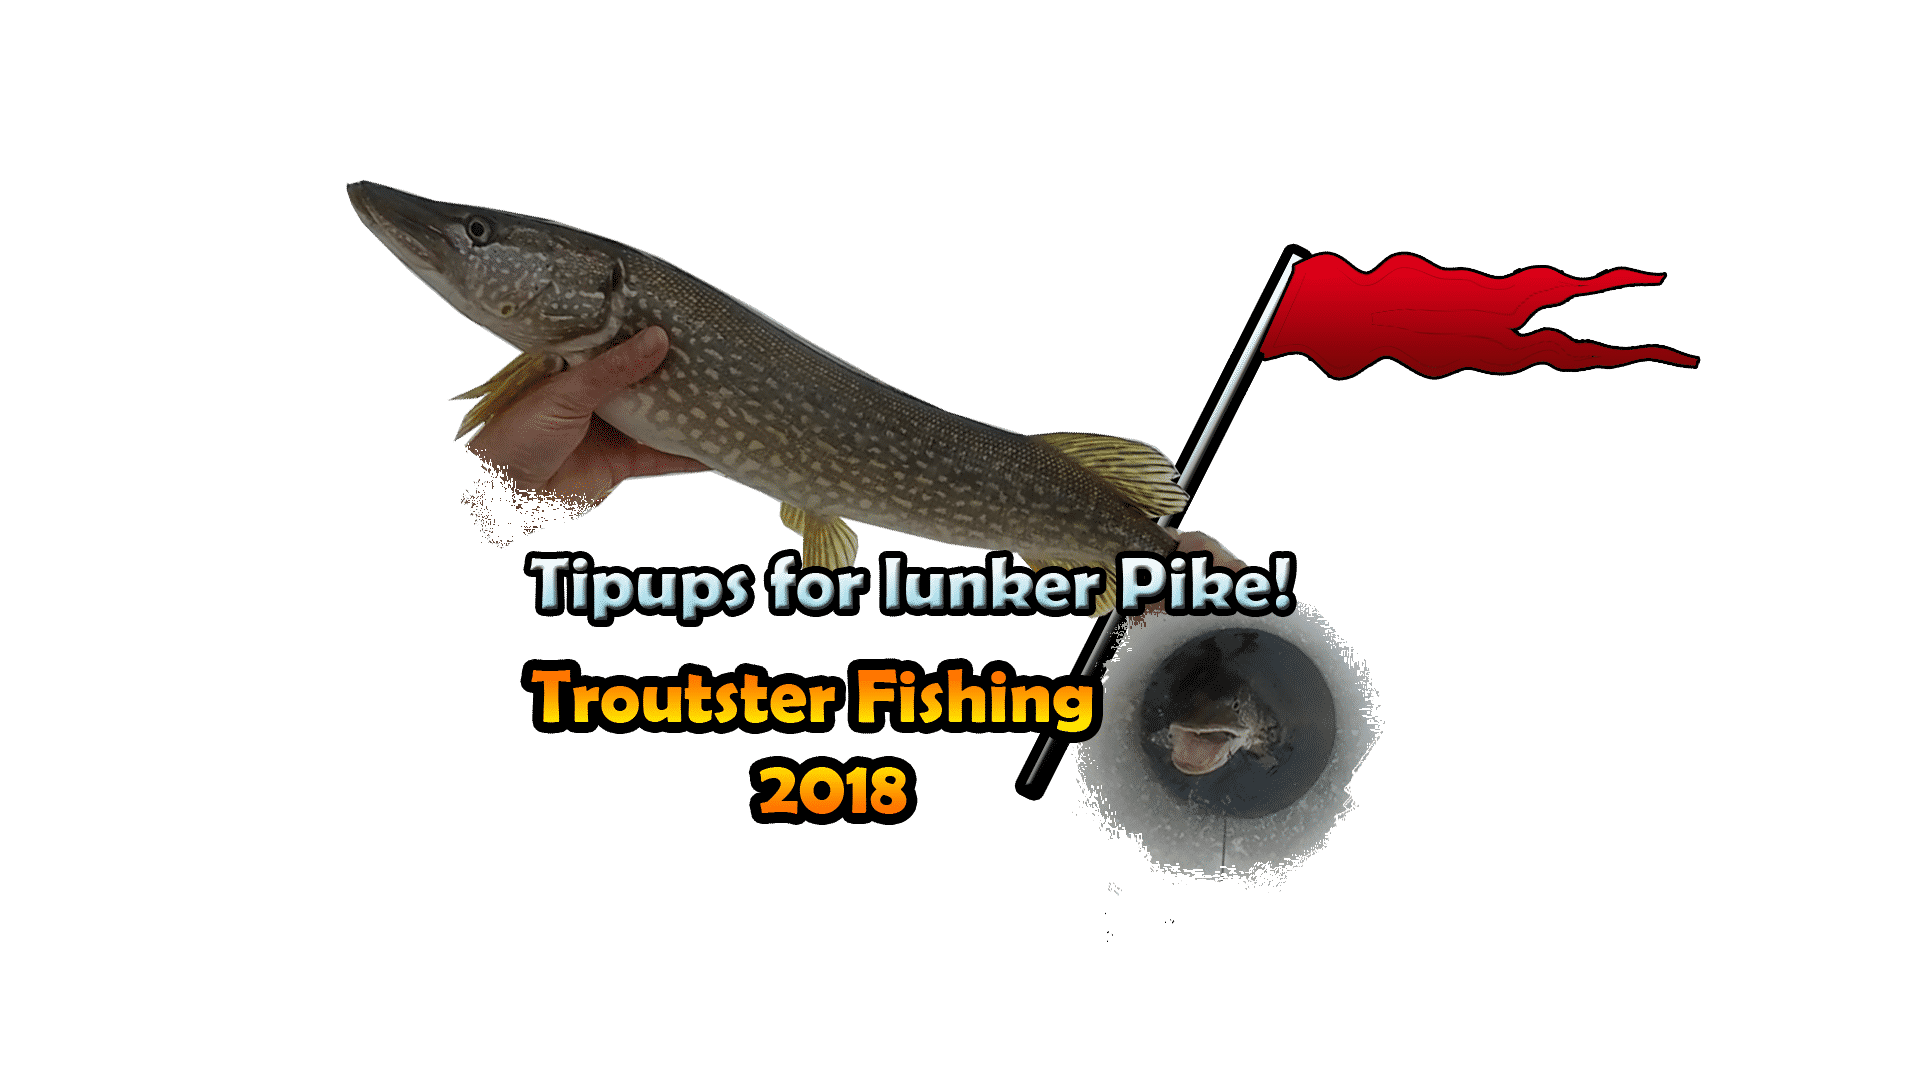 troutster tipup fishing